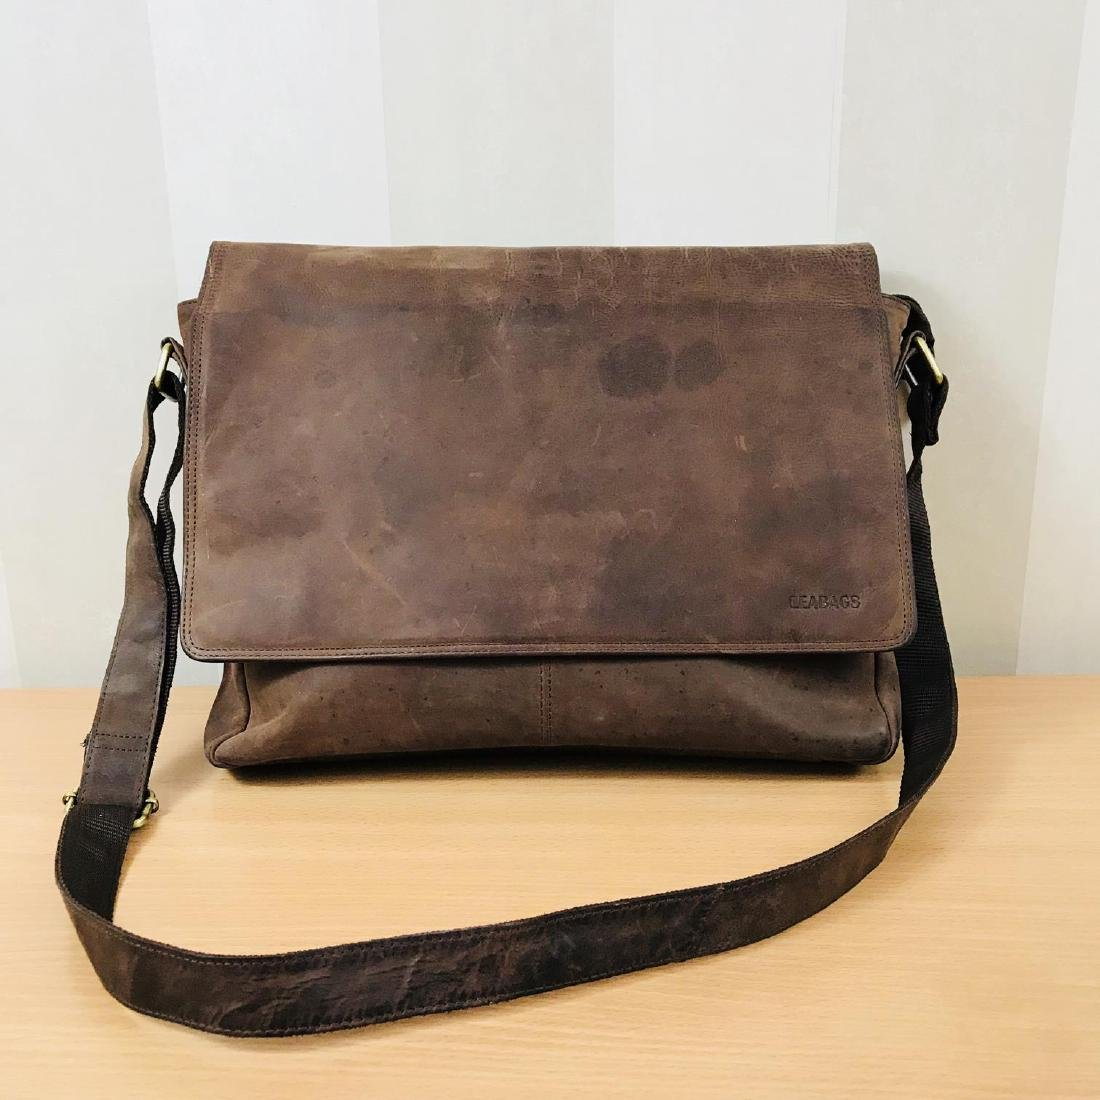 Vintage LEABAGS Leather Shoulder Bag